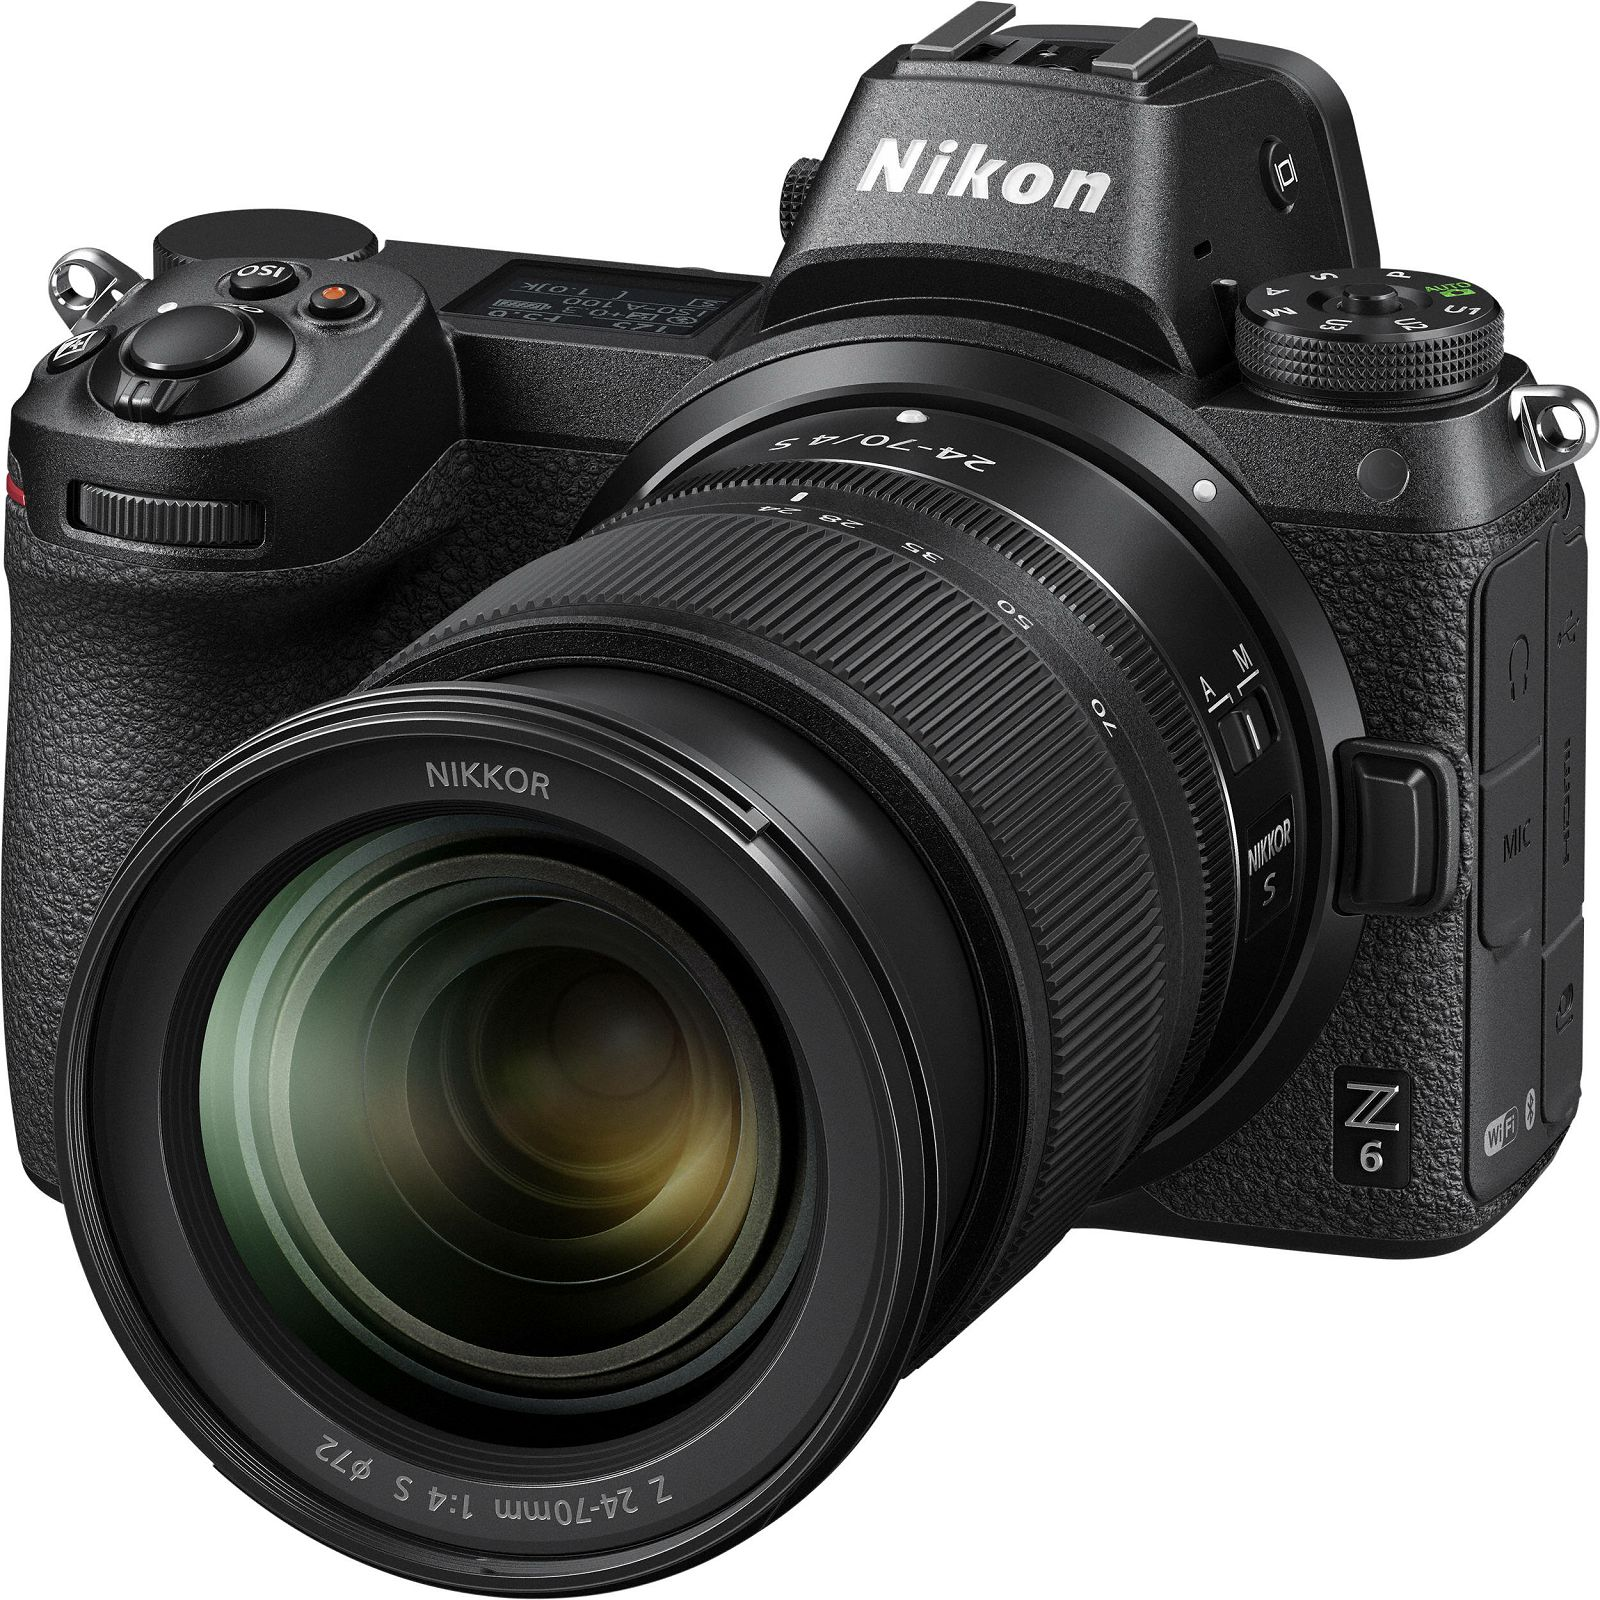 Aparat Foto Mirrorless Nikon Z6  24.5MP Video 4K Kit cu Obiectiv 24-70mm f/4